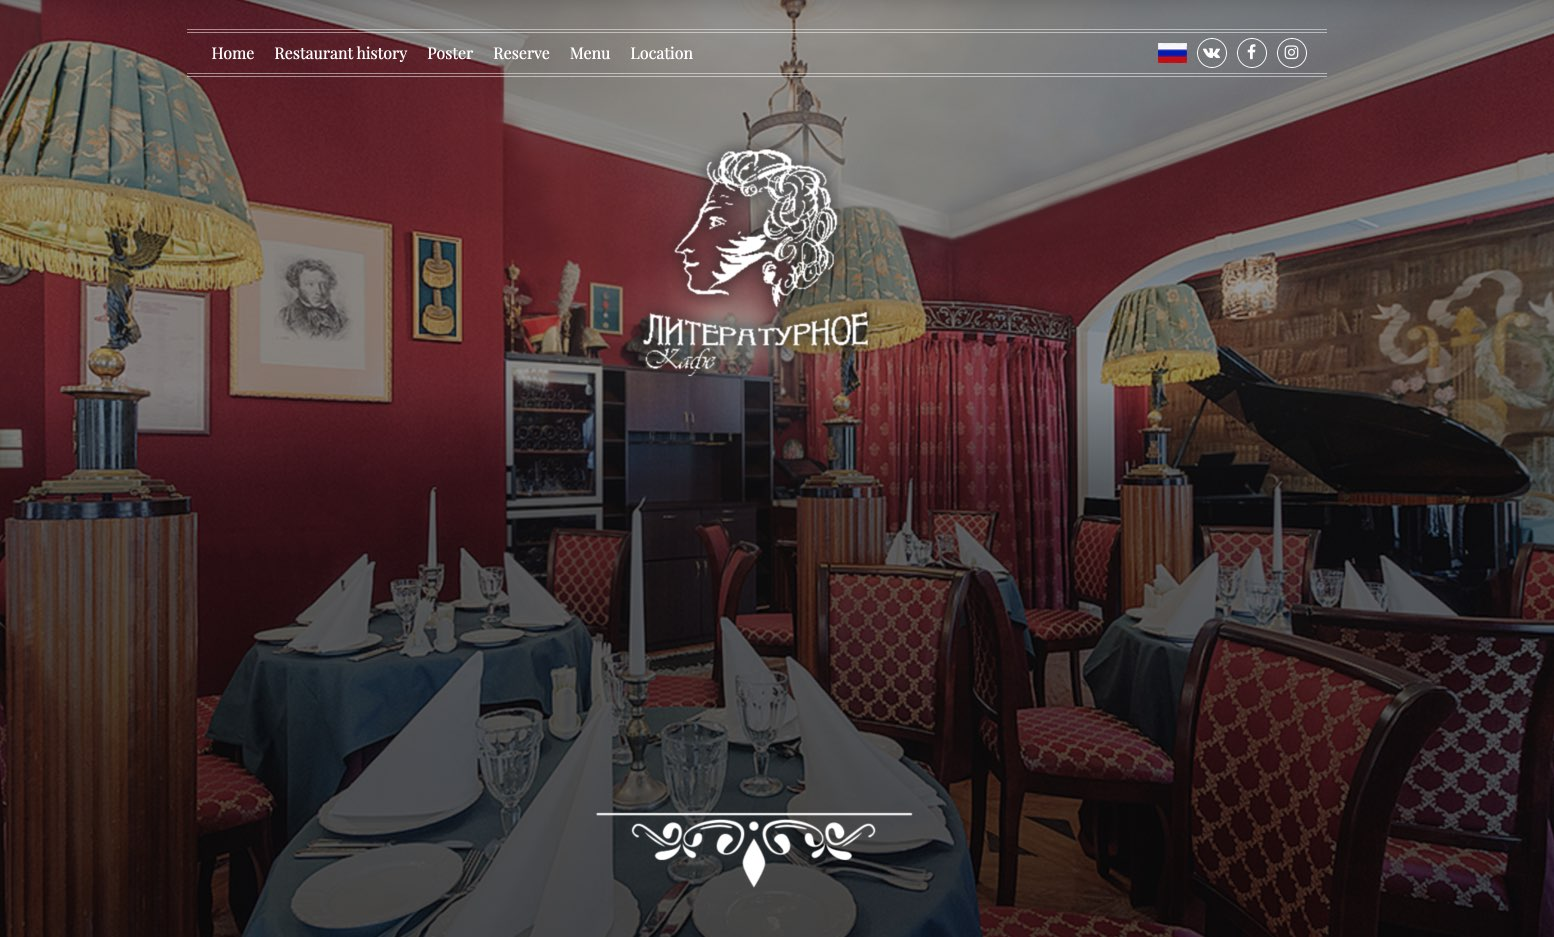 Restaurant Literary Cafe in St. Petersburg